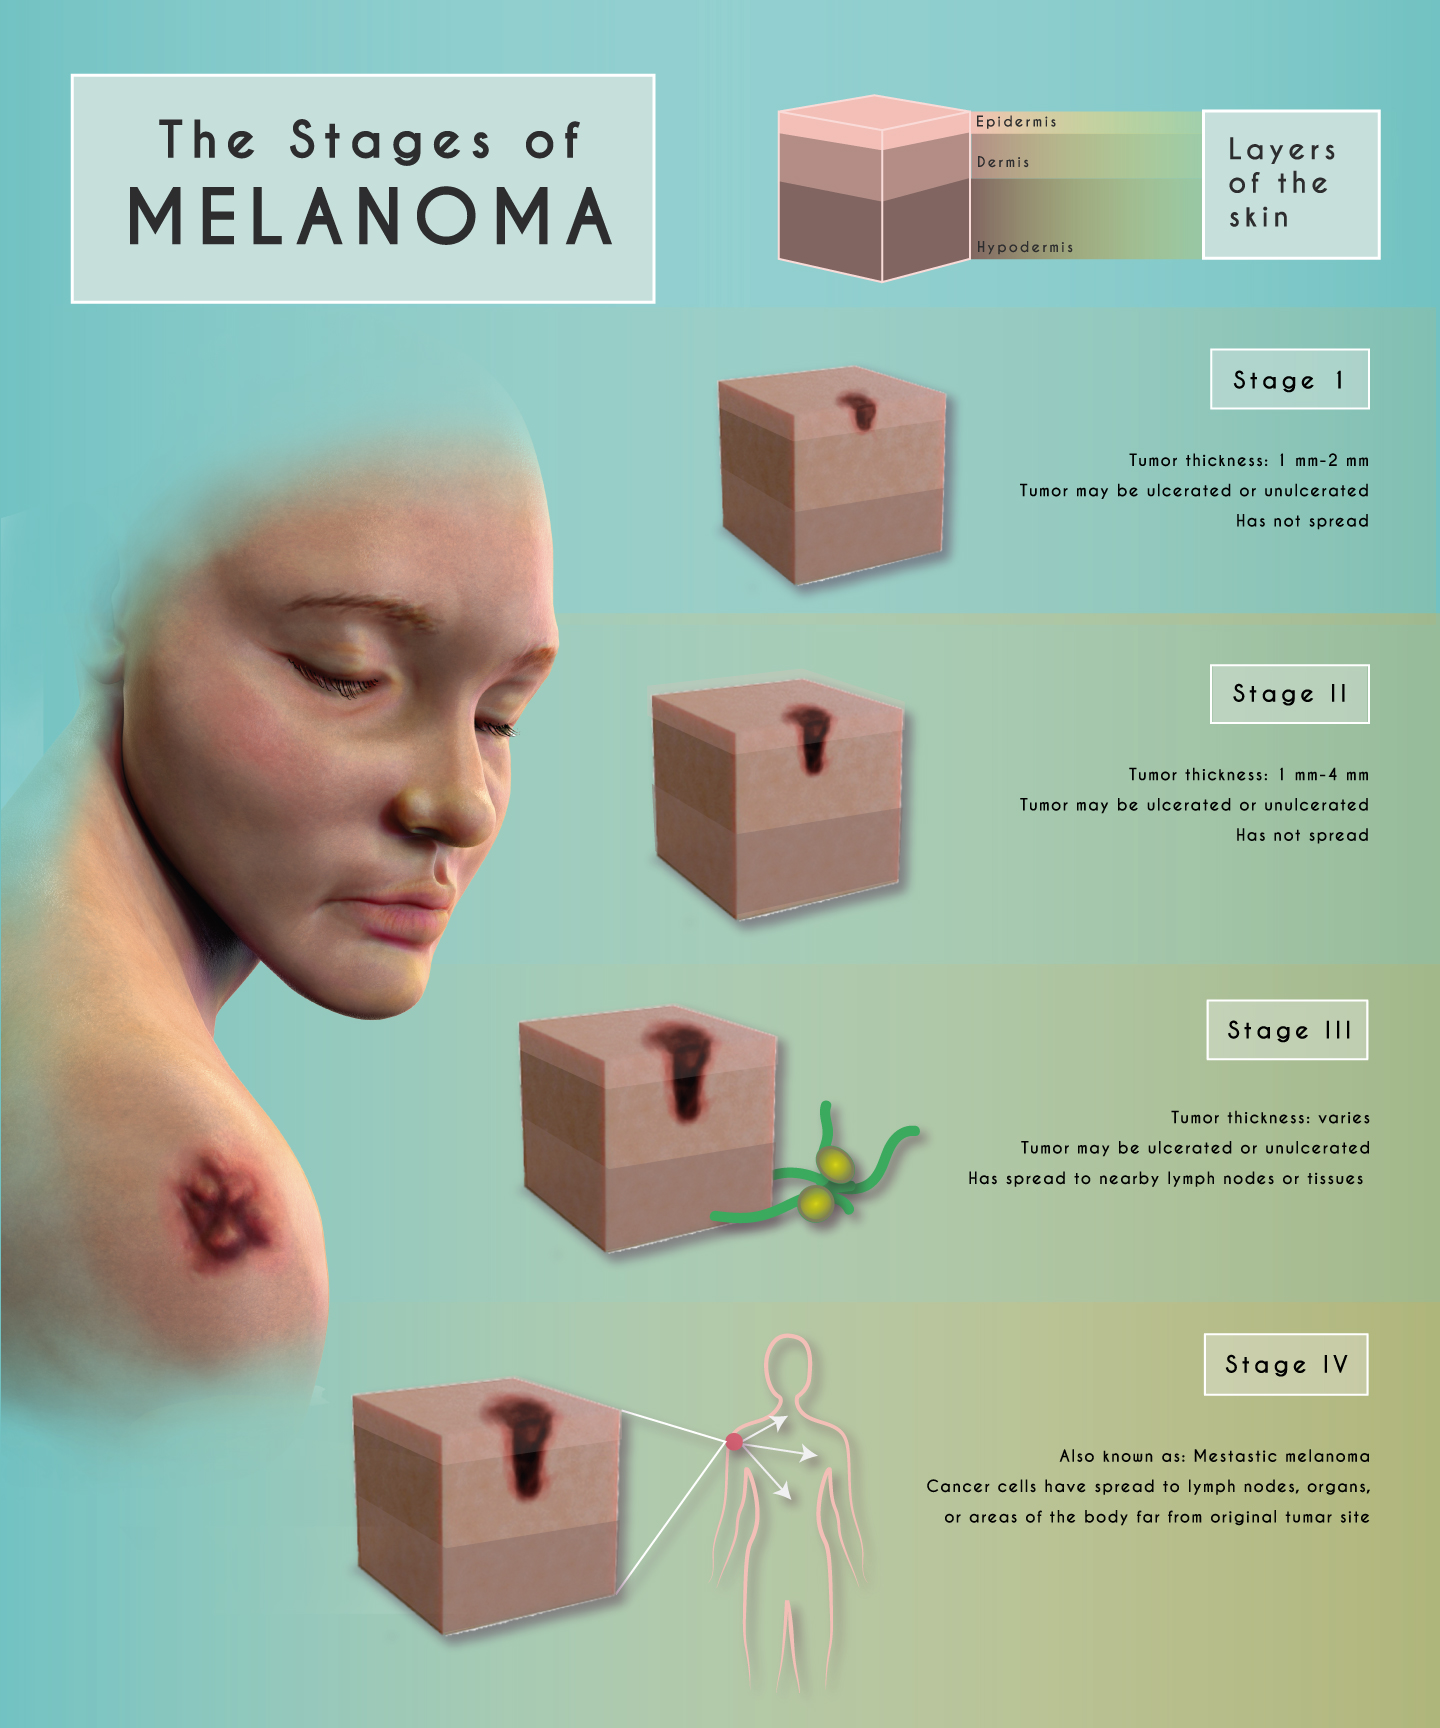 The Stages of Melanoma - Learn More